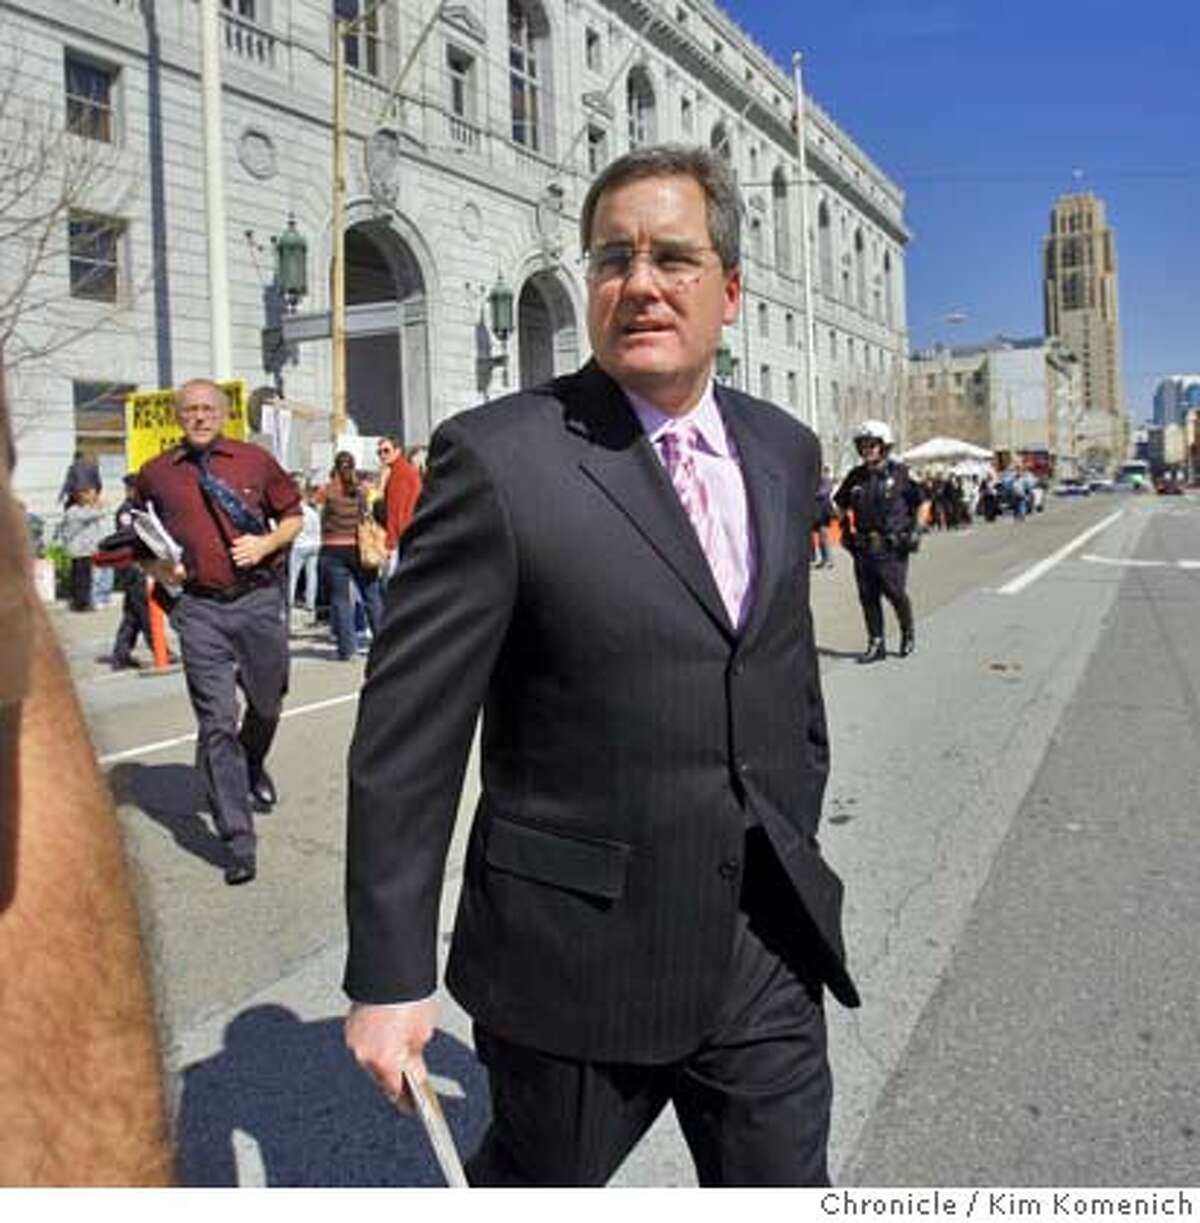 San Francisco City Attorney Dennis Herrera walks to City Hall from the State of California Building in San Francisco, Calif. on Tuesday, March 4, 2008 where the California Supreme Court is hearing oral arguments on the same-sex marriage case. Photo by Kim Komenich / The San Francisco Chronicle